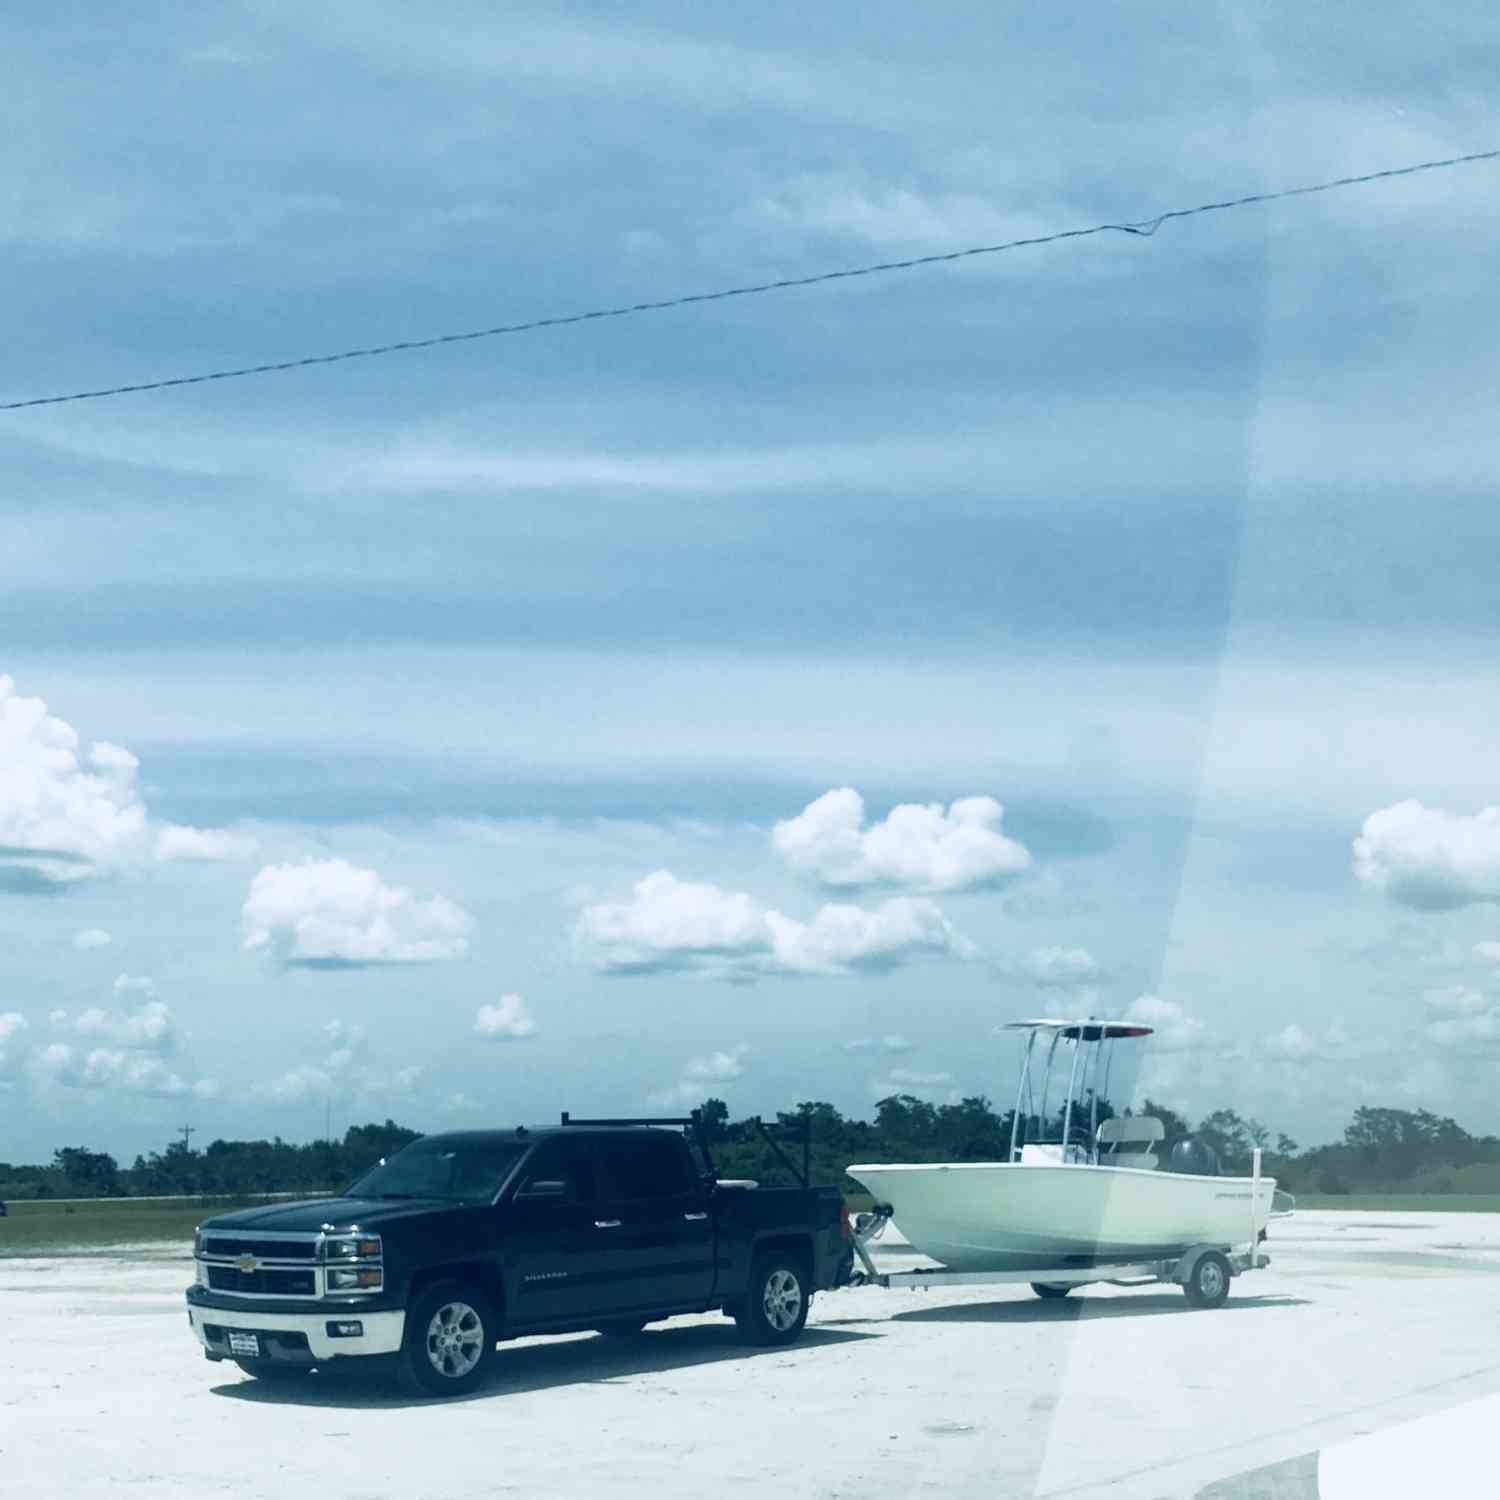 Title: Sportsman boat looks good on and off the water! - On board their Sportsman Island Reef 17 Center Console - Location: Tampa, Fl. Participating in the Photo Contest #SportsmanNovember2018